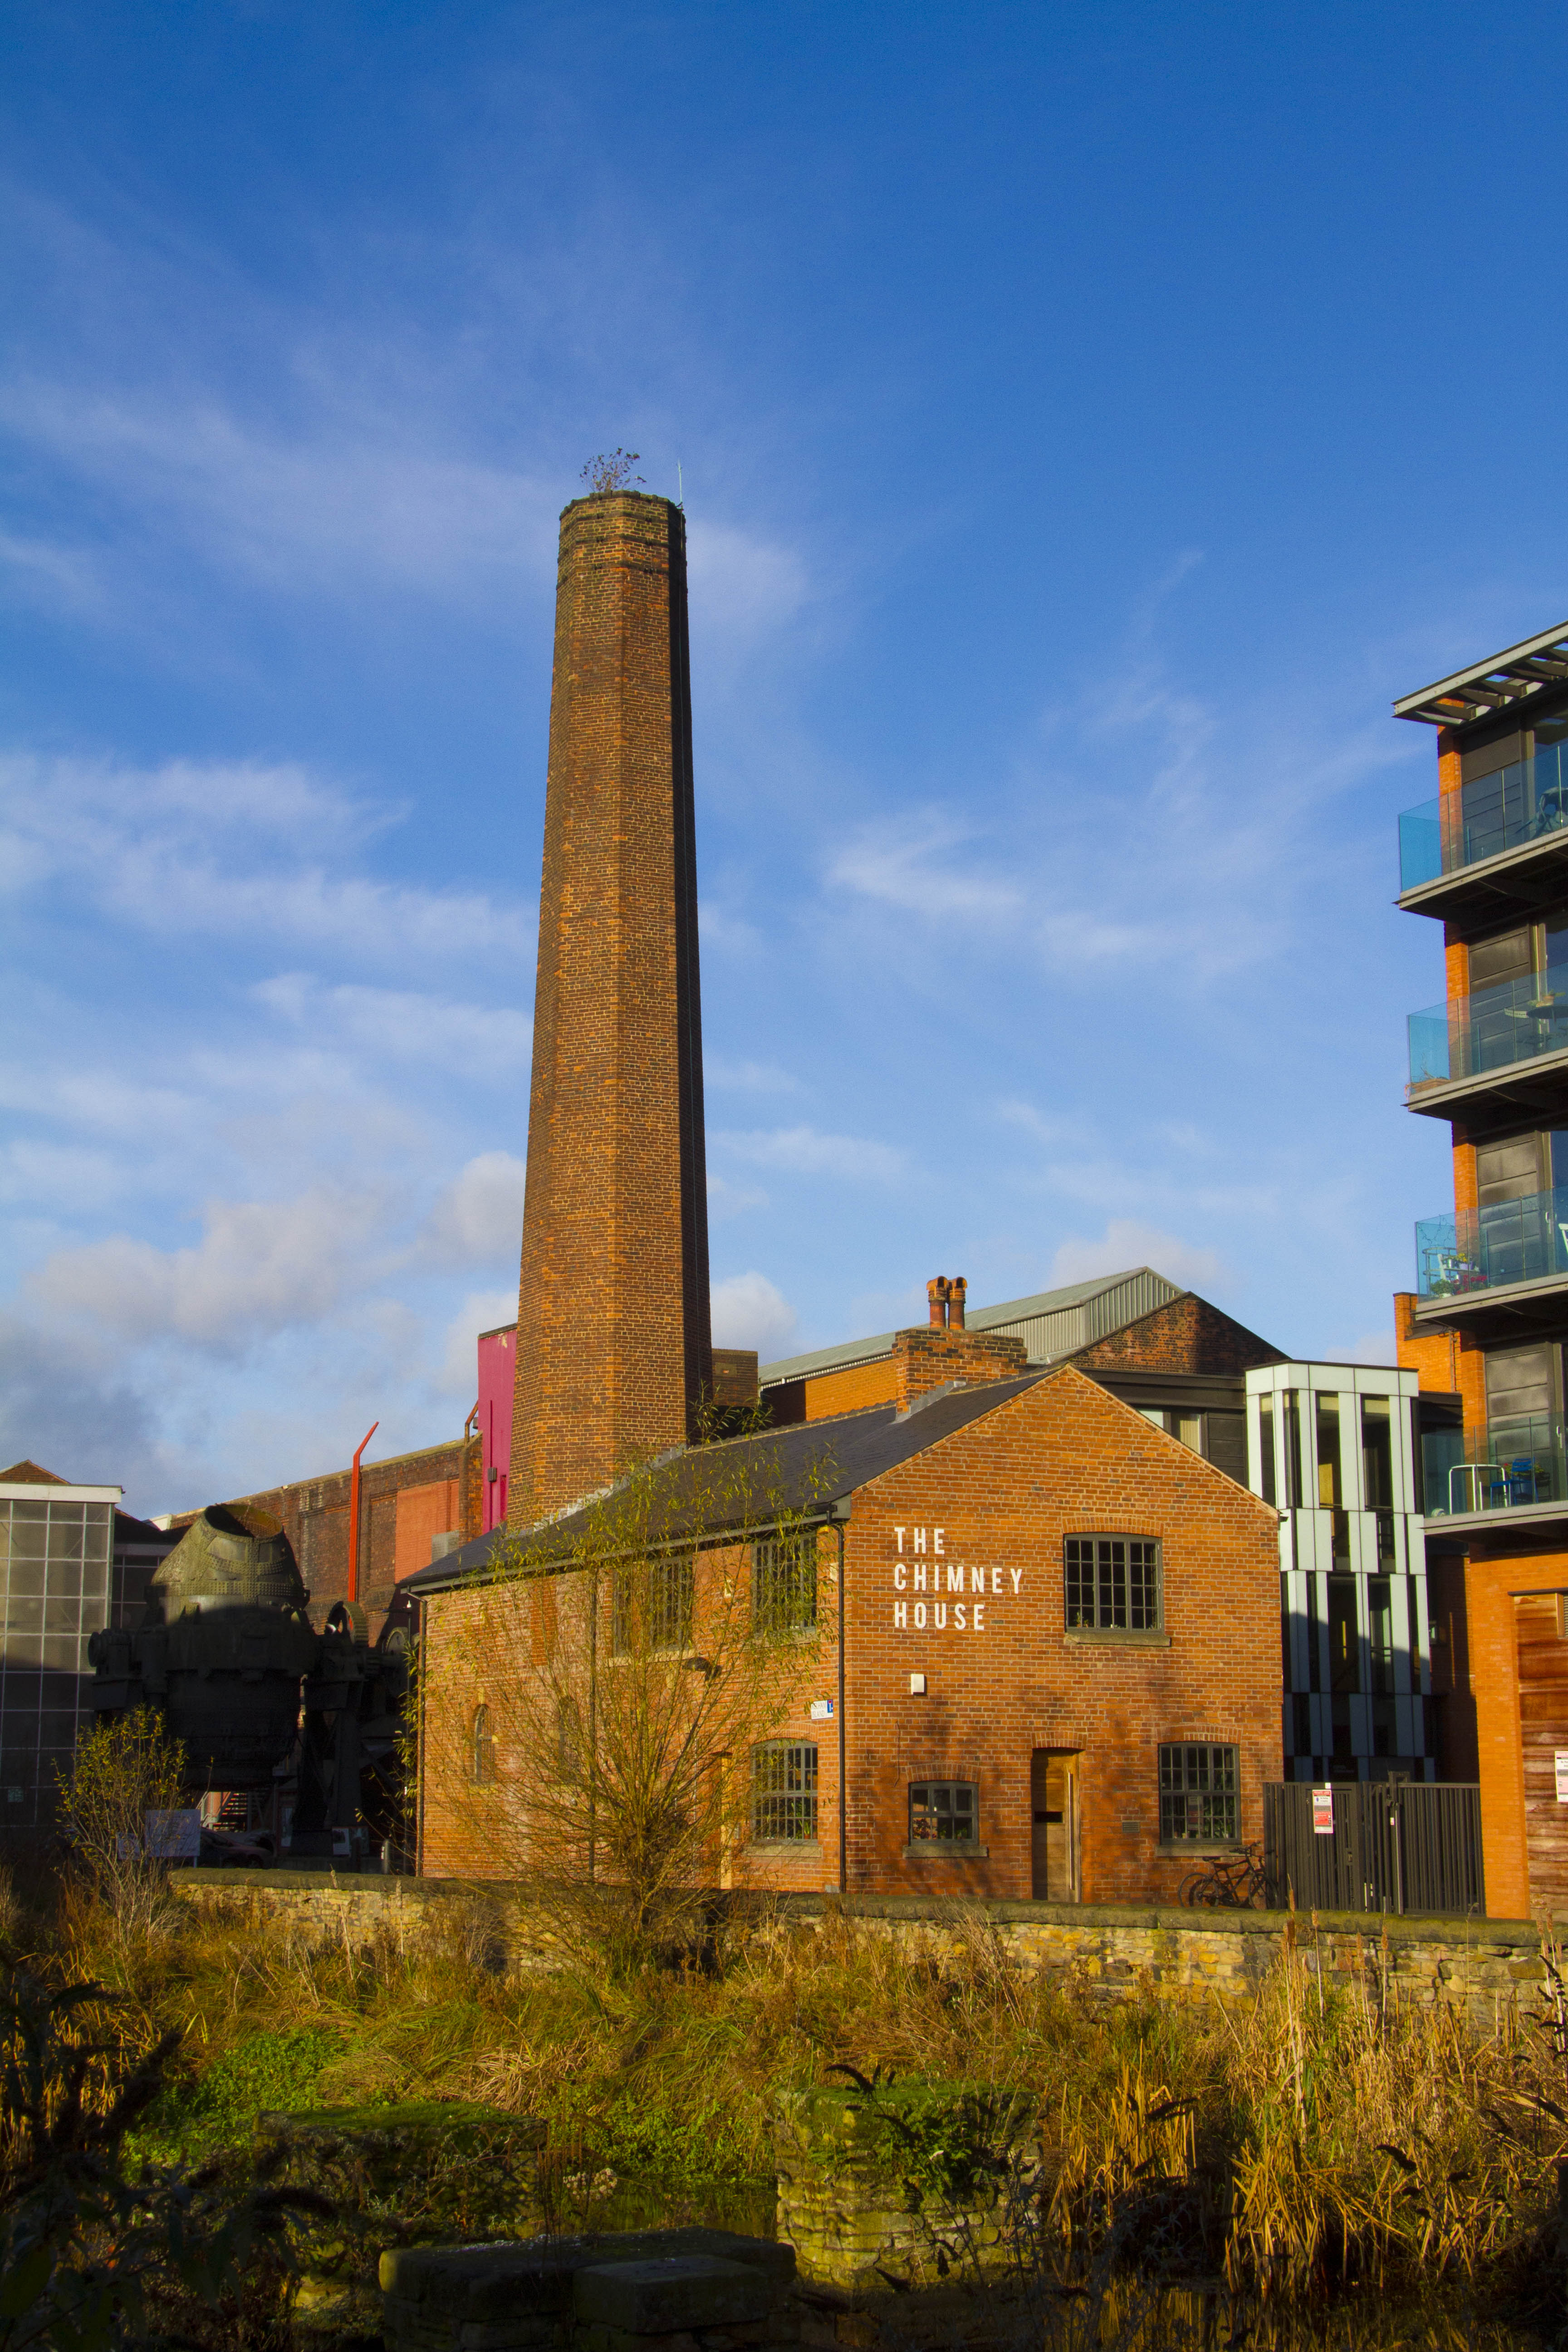 Kelham Island Chimney house